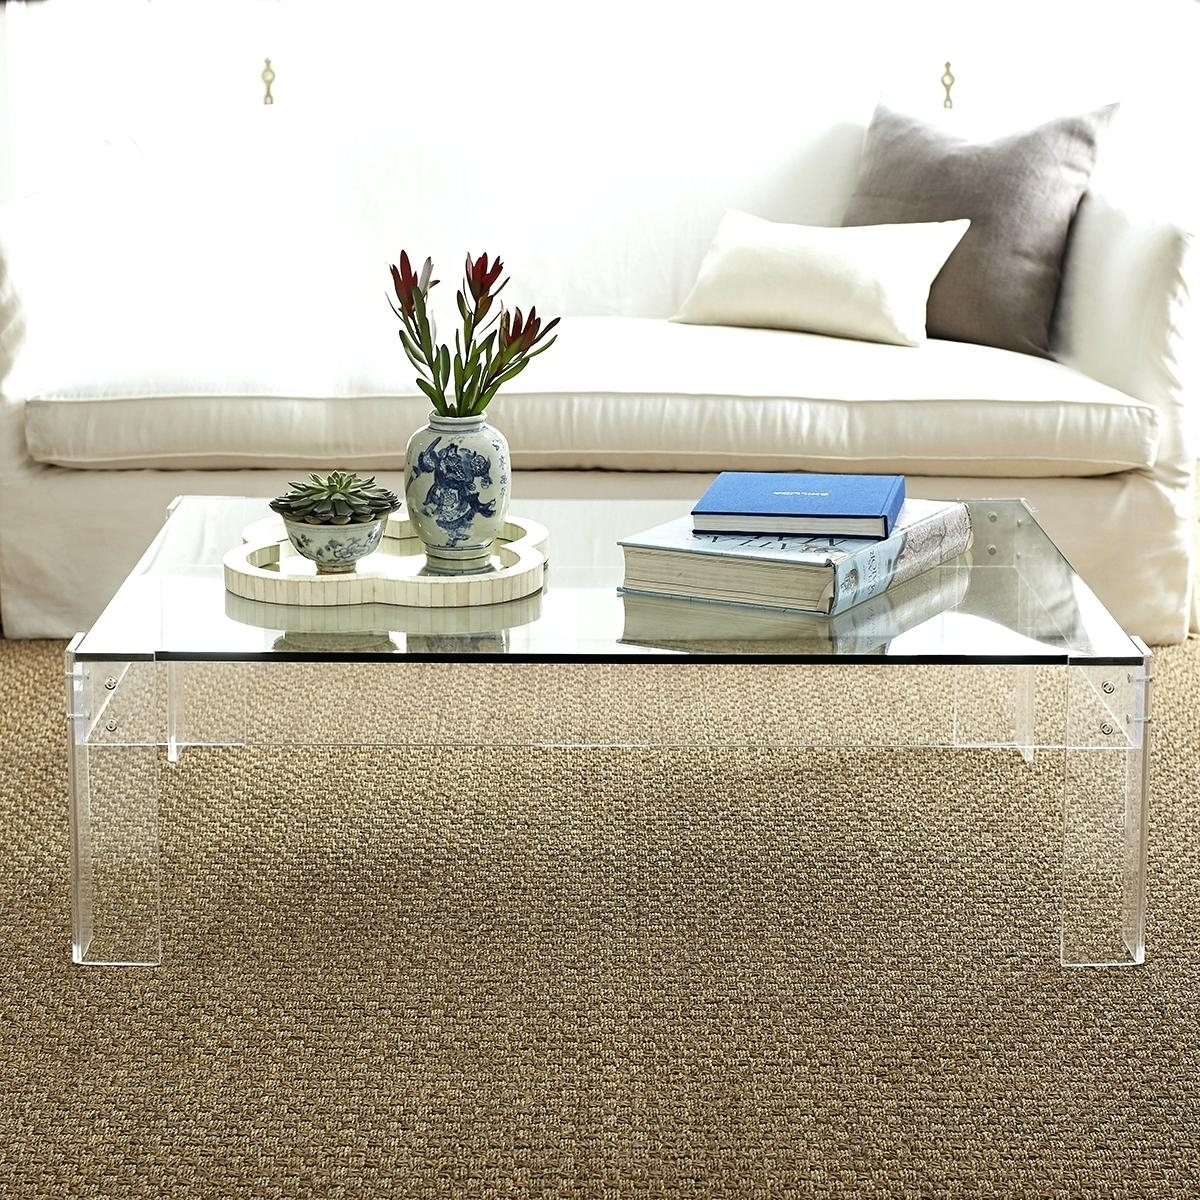 Chiseled Edge Coffee Table Wisteria Disappearing – Shizz with Chiseled Edge Coffee Tables (Image 3 of 30)